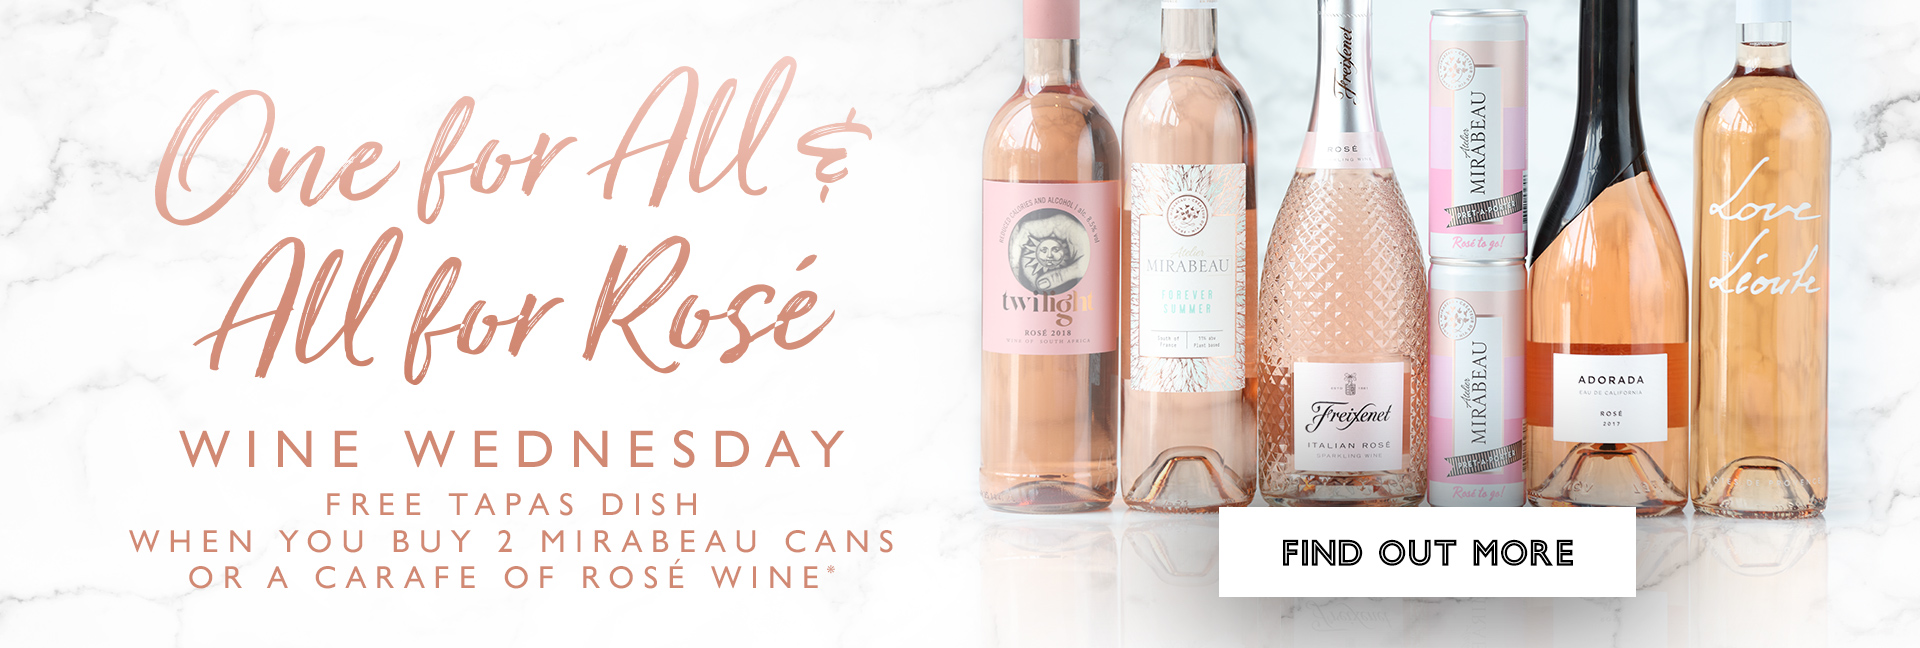 Wine Wednesdays at All Bar One Trafford Centre